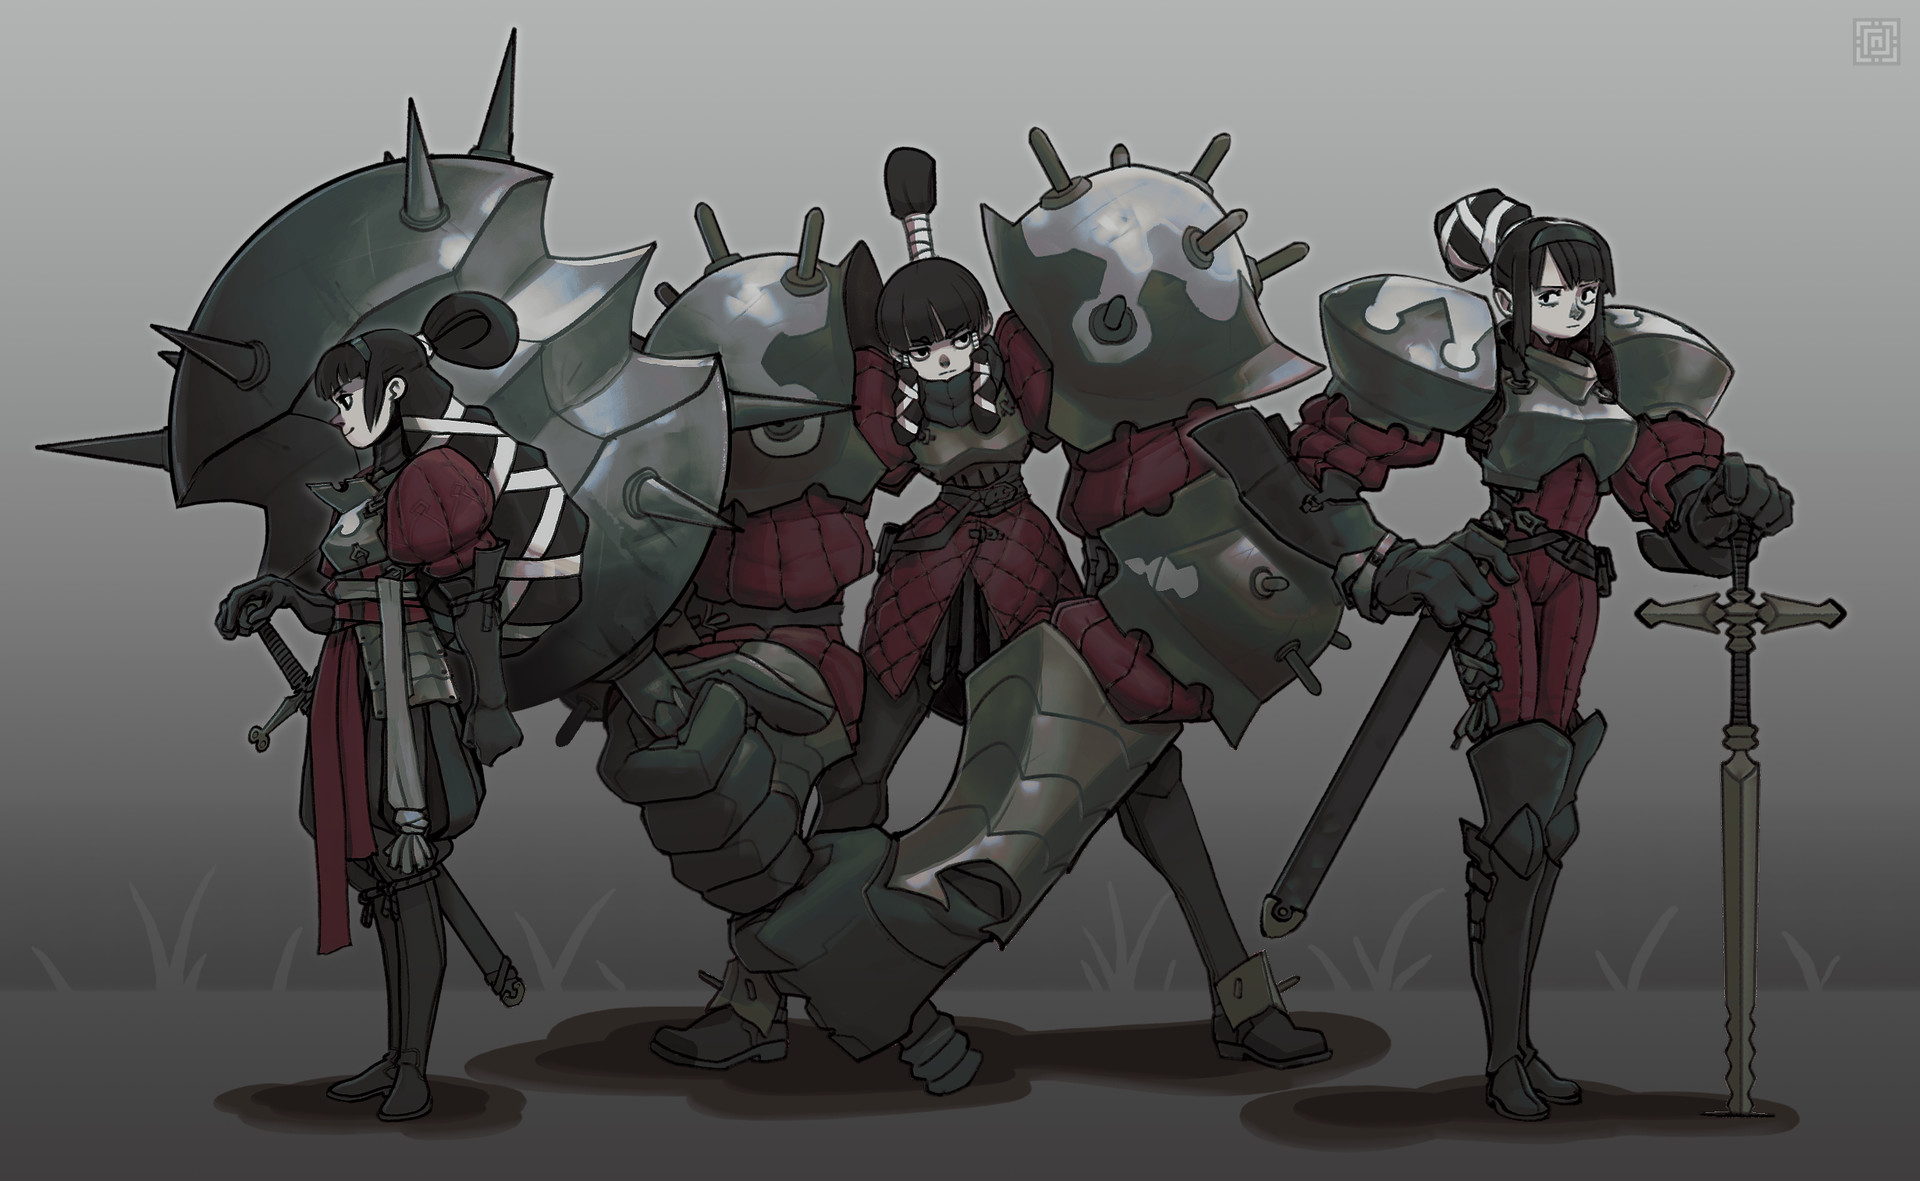 Alexis rives chevaliere1